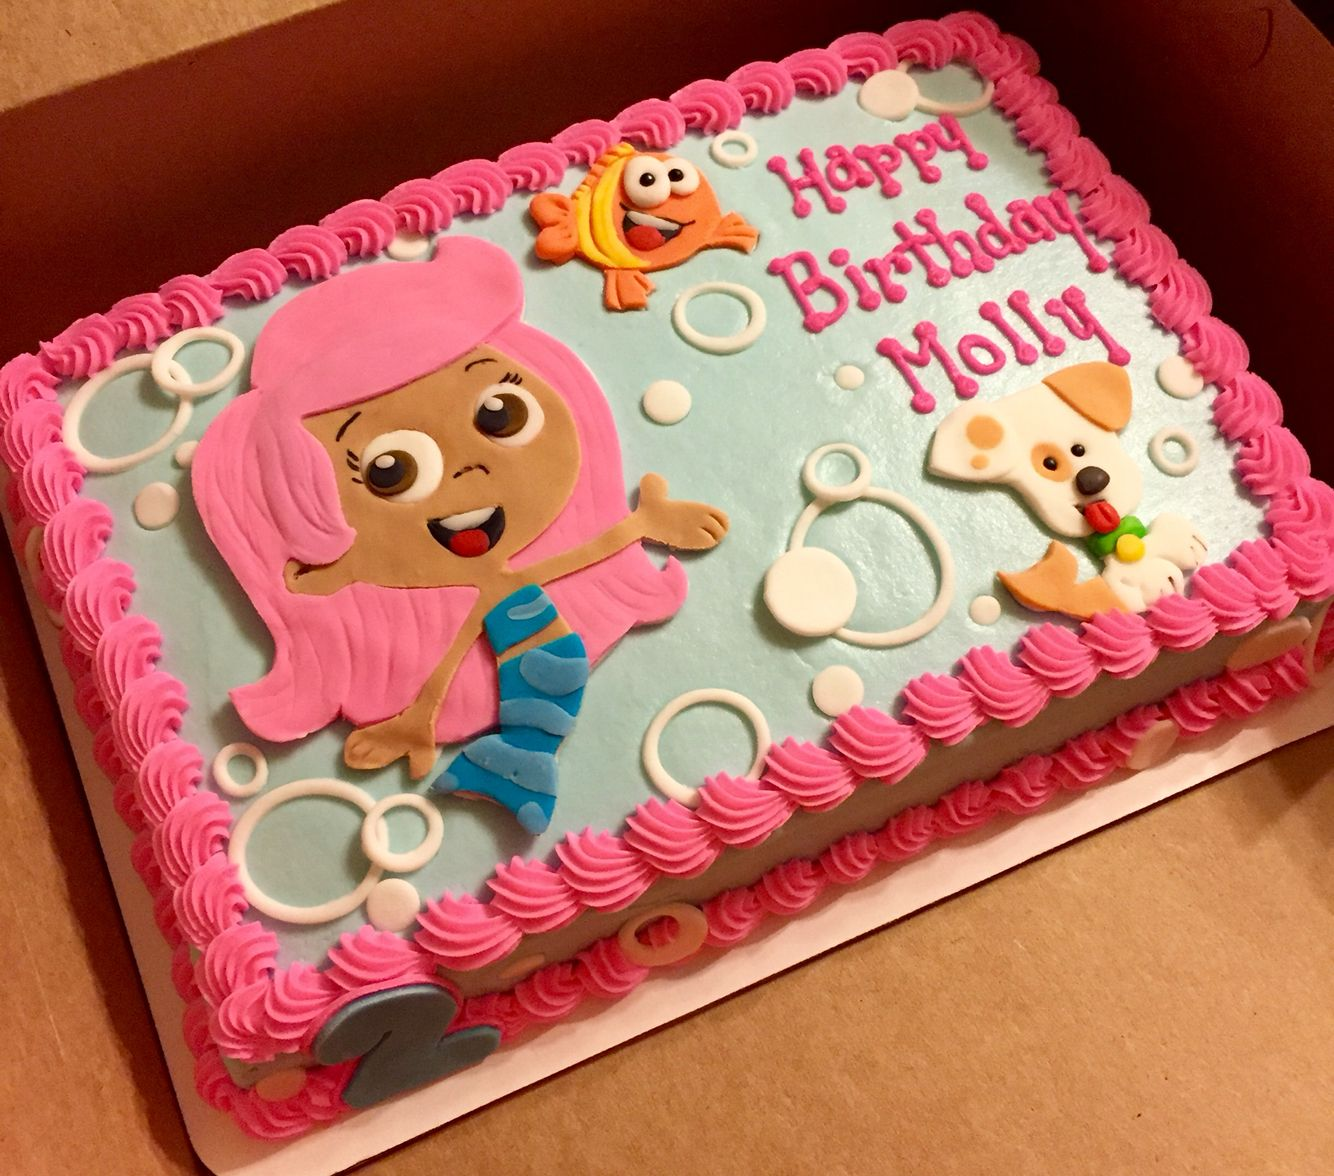 Marvelous Bubble Guppies Cake Bubbleguppiecakes Funny Birthday Cards Online Alyptdamsfinfo